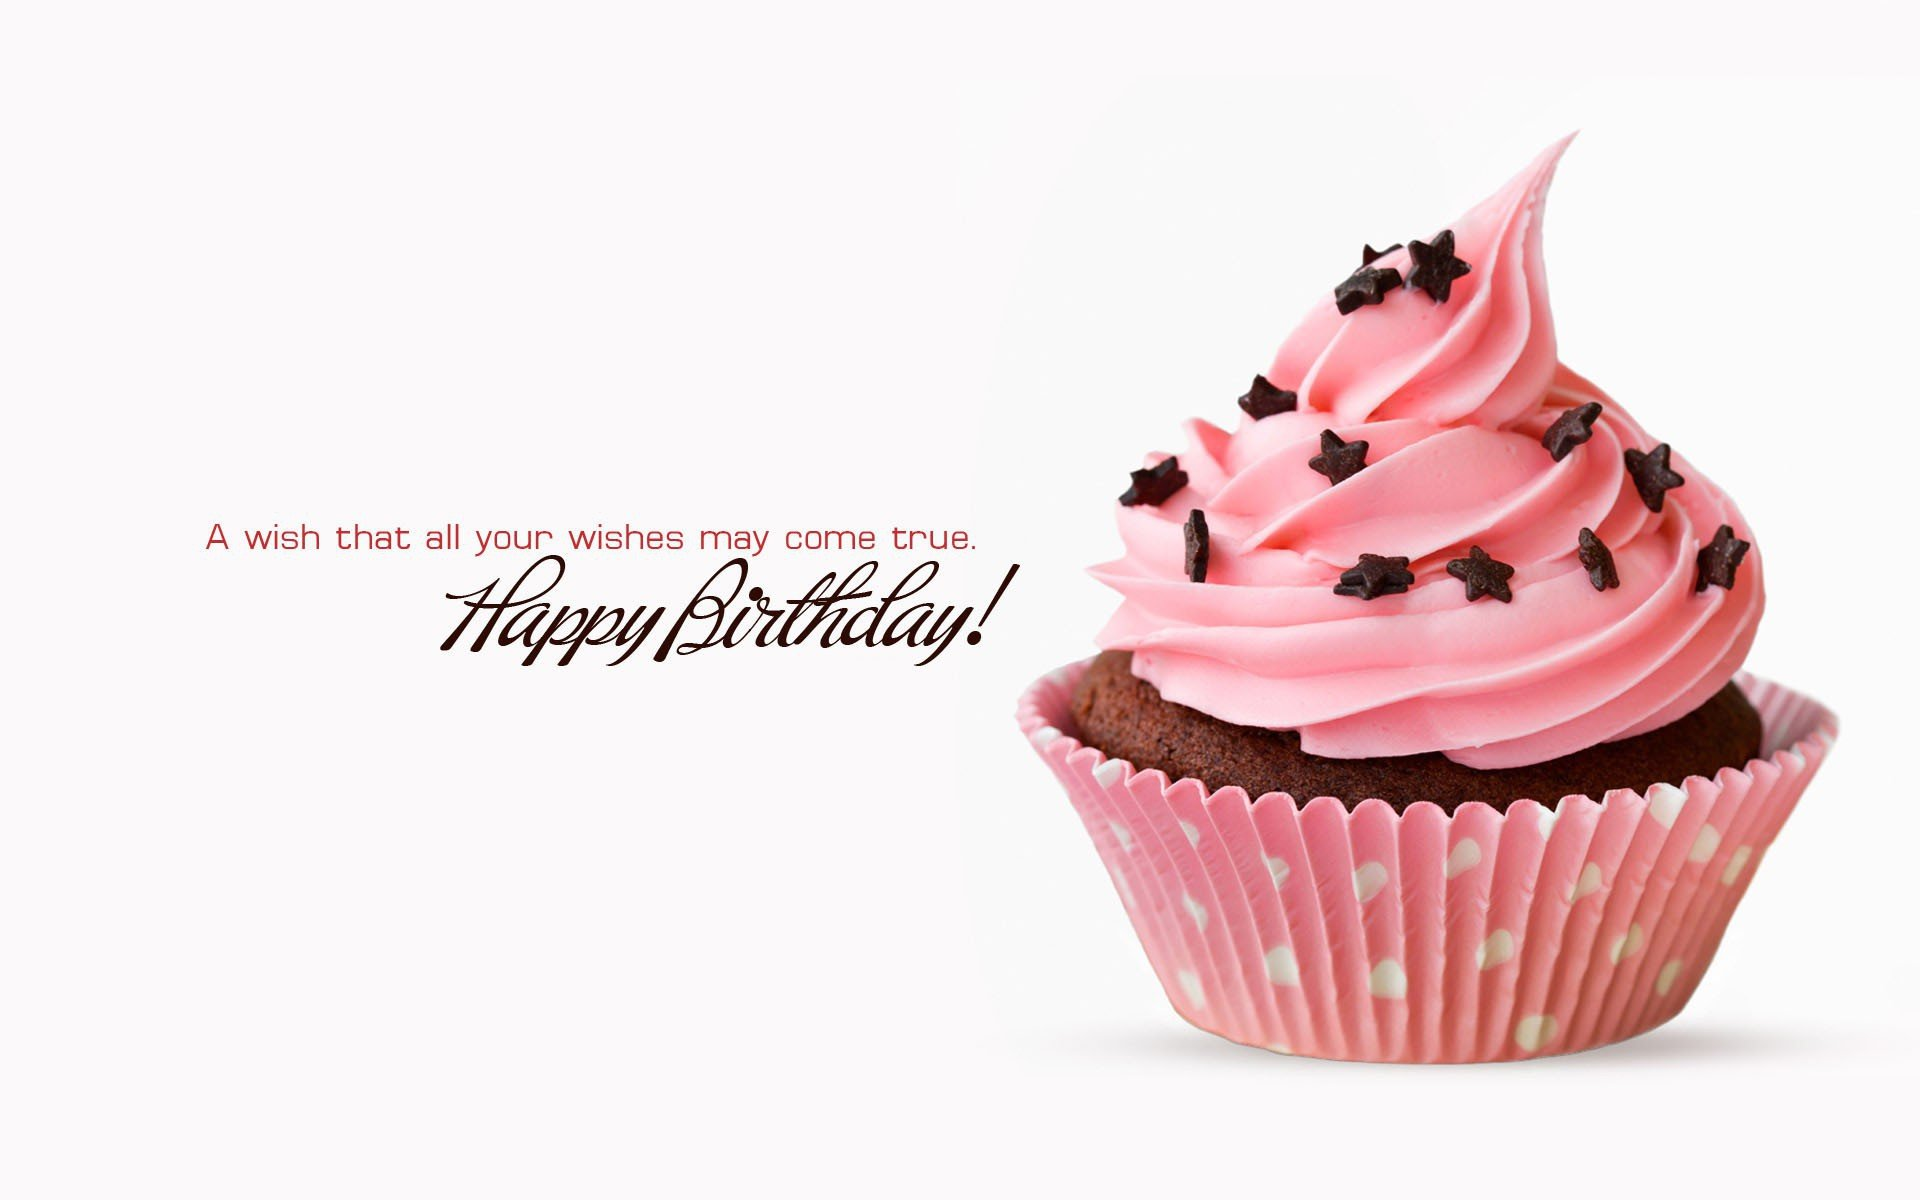 Happy Birthday Wishes Cake Wallpapers New HD 1920x1200